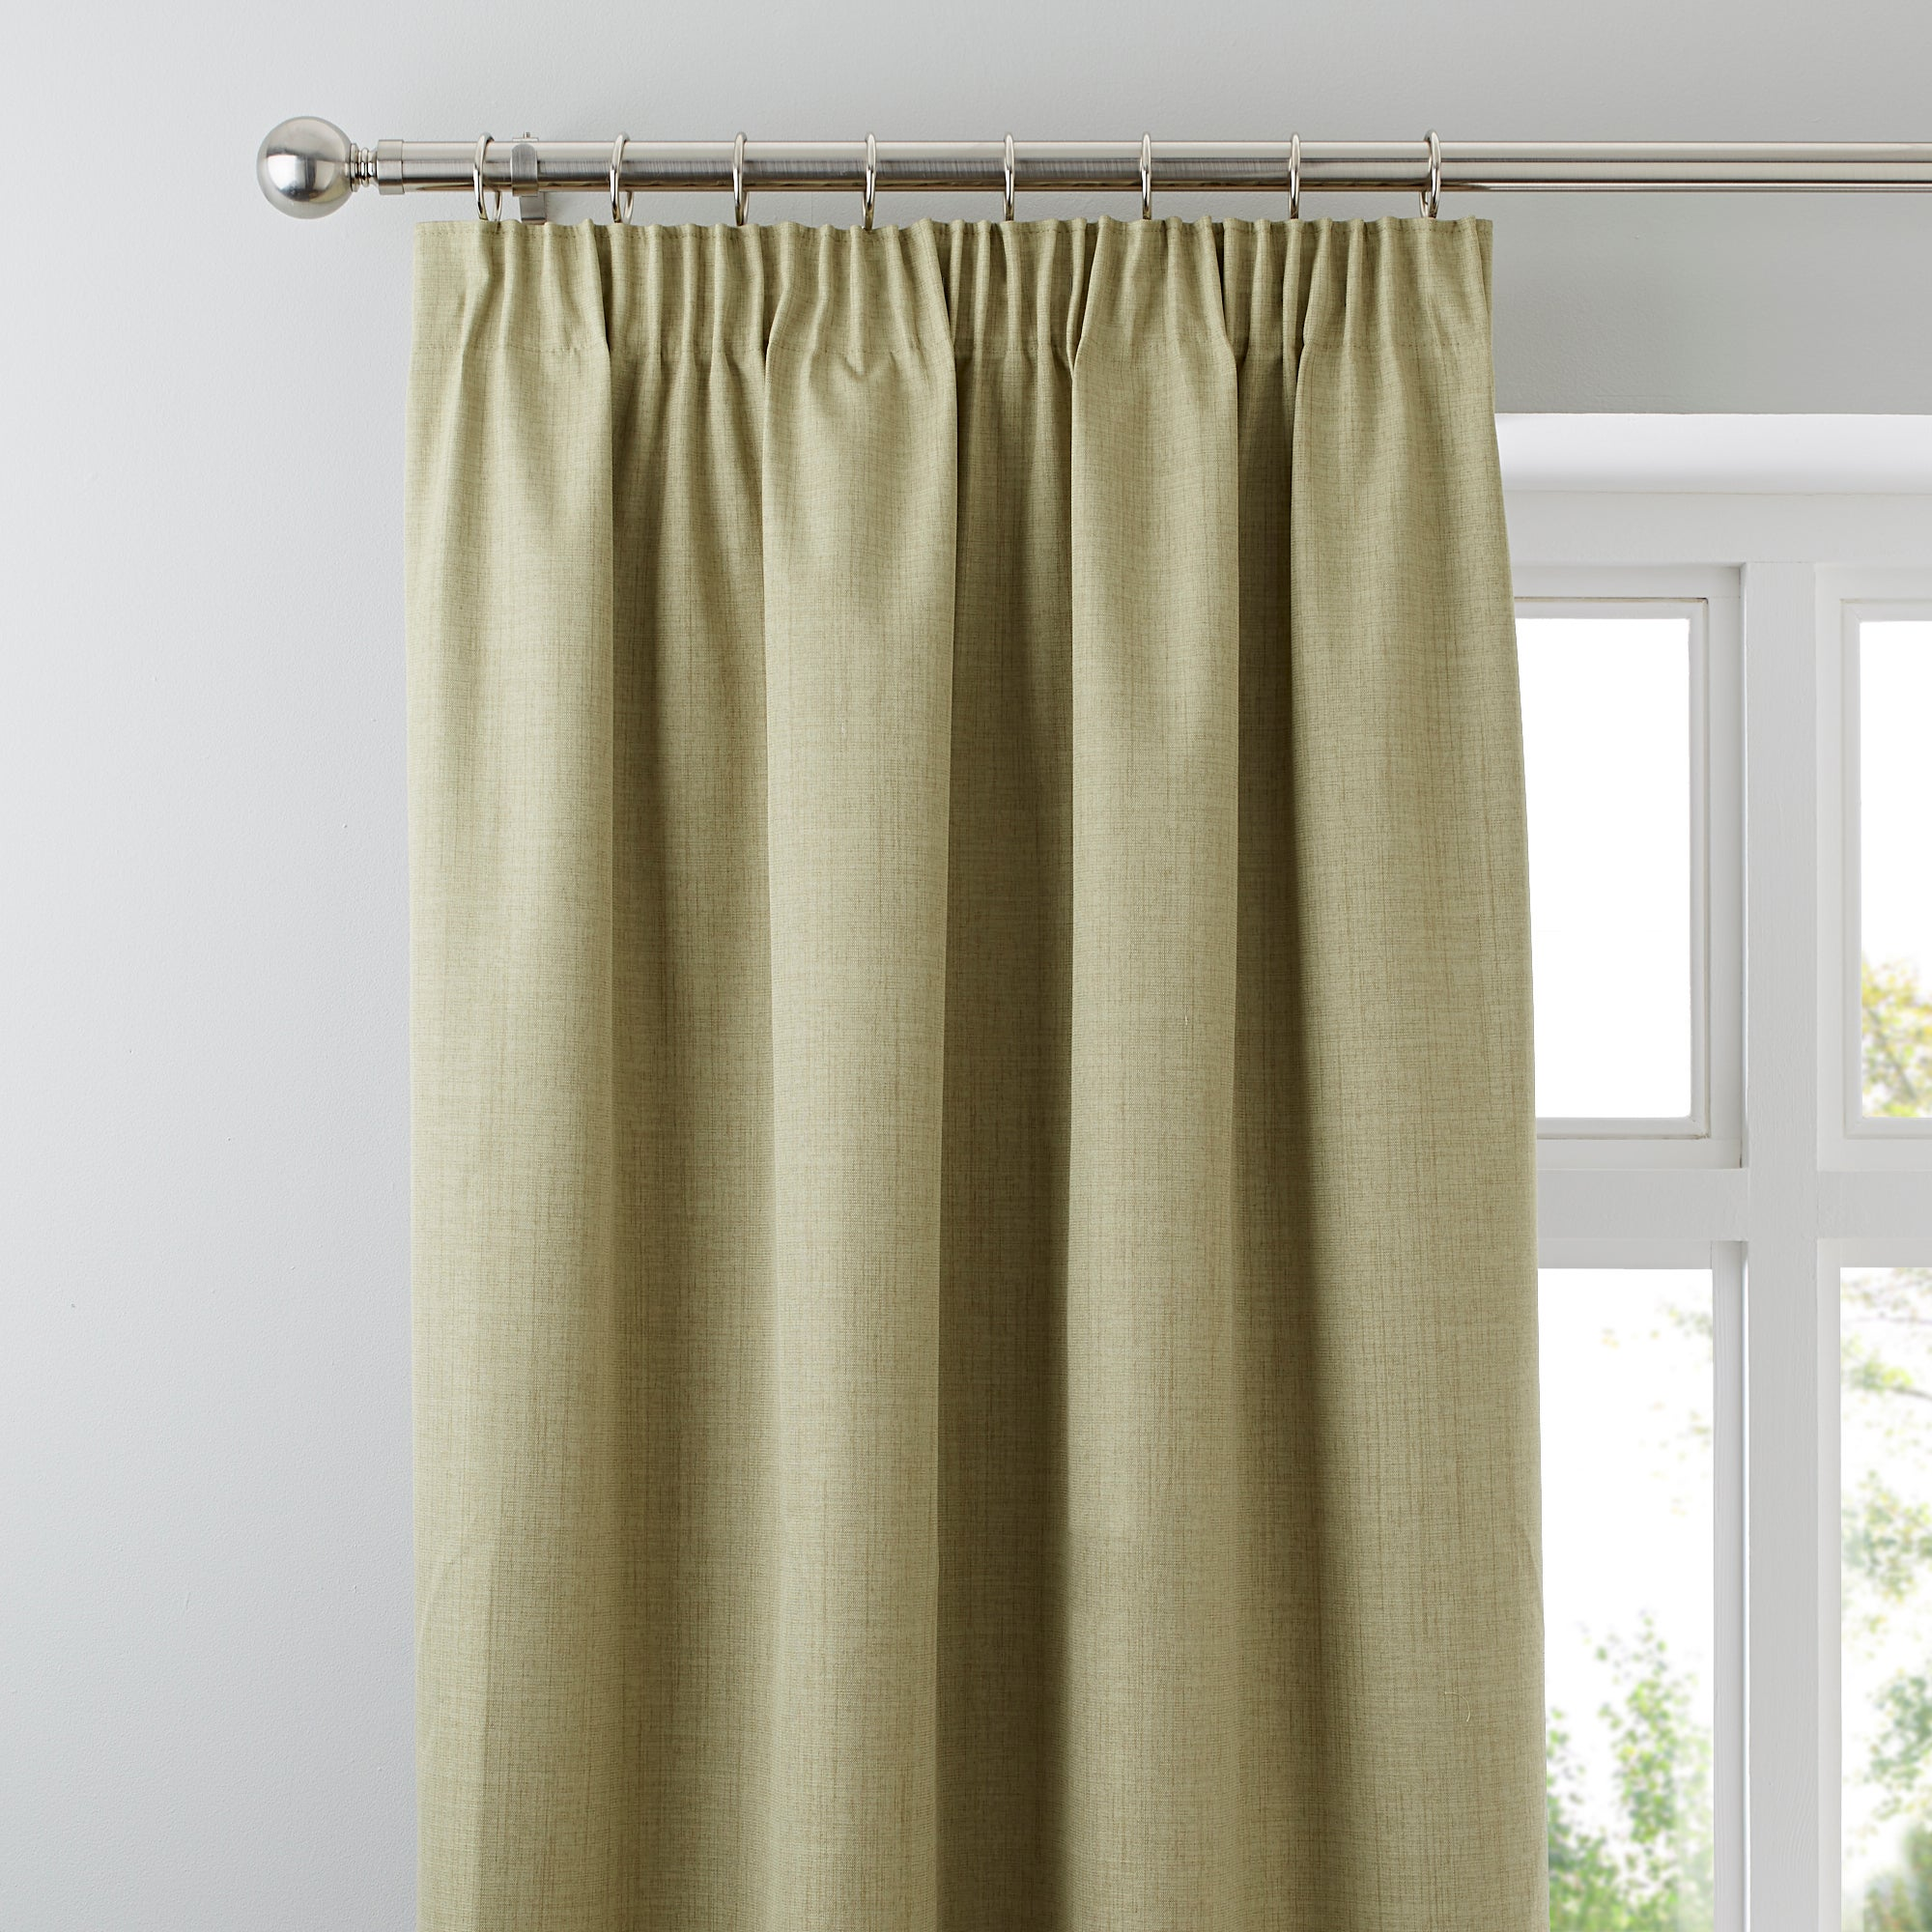 Waters and Noble Green Solar Blackout Pencil Pleat Curtains